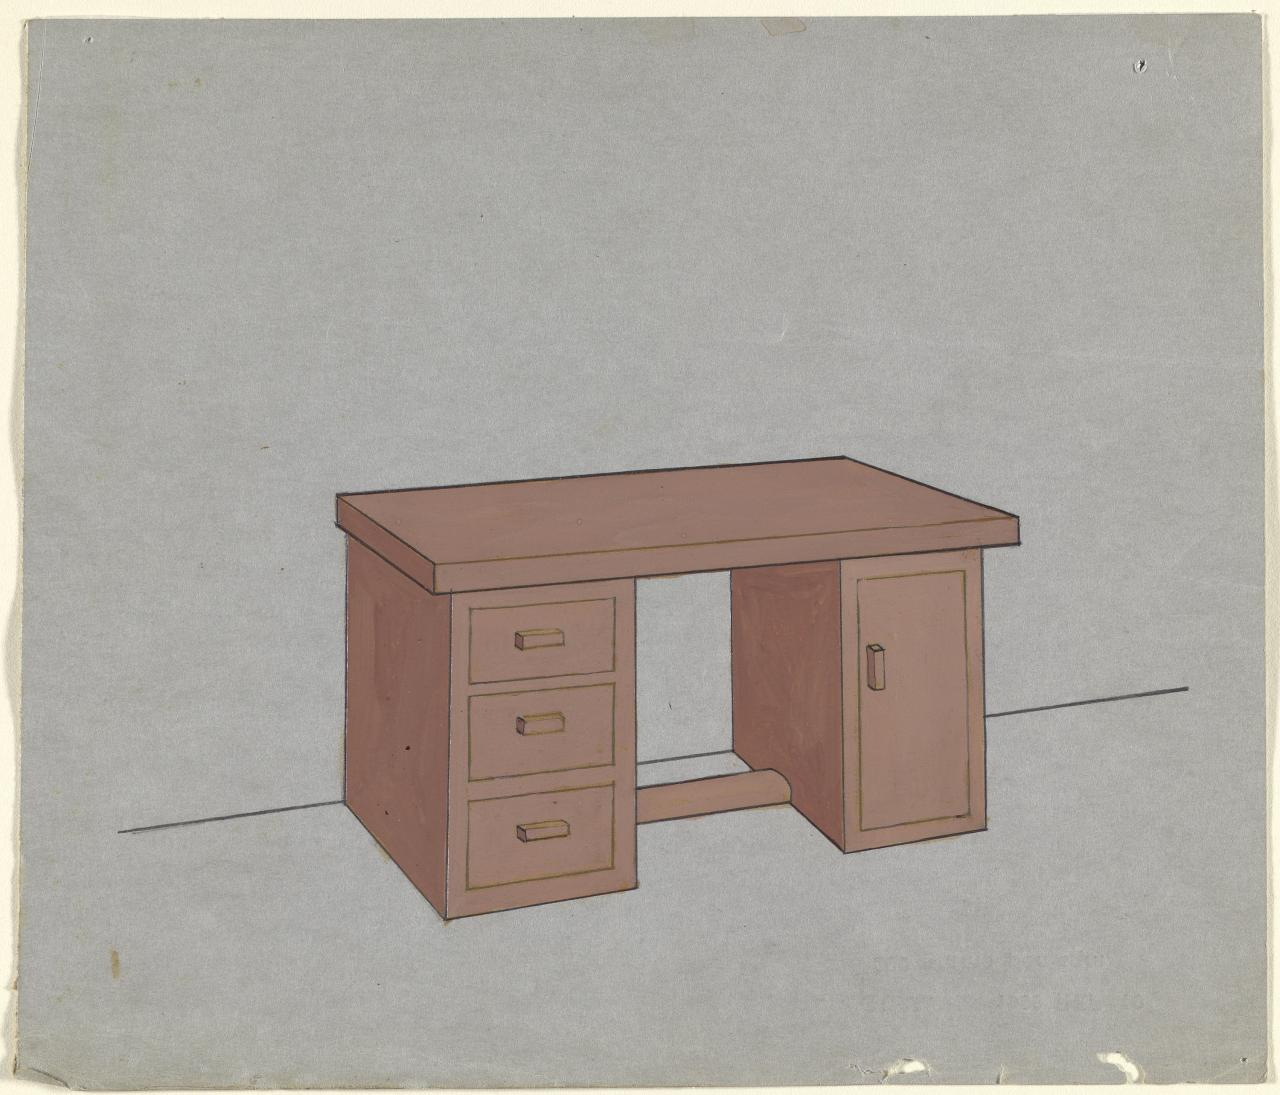 Design for a desk